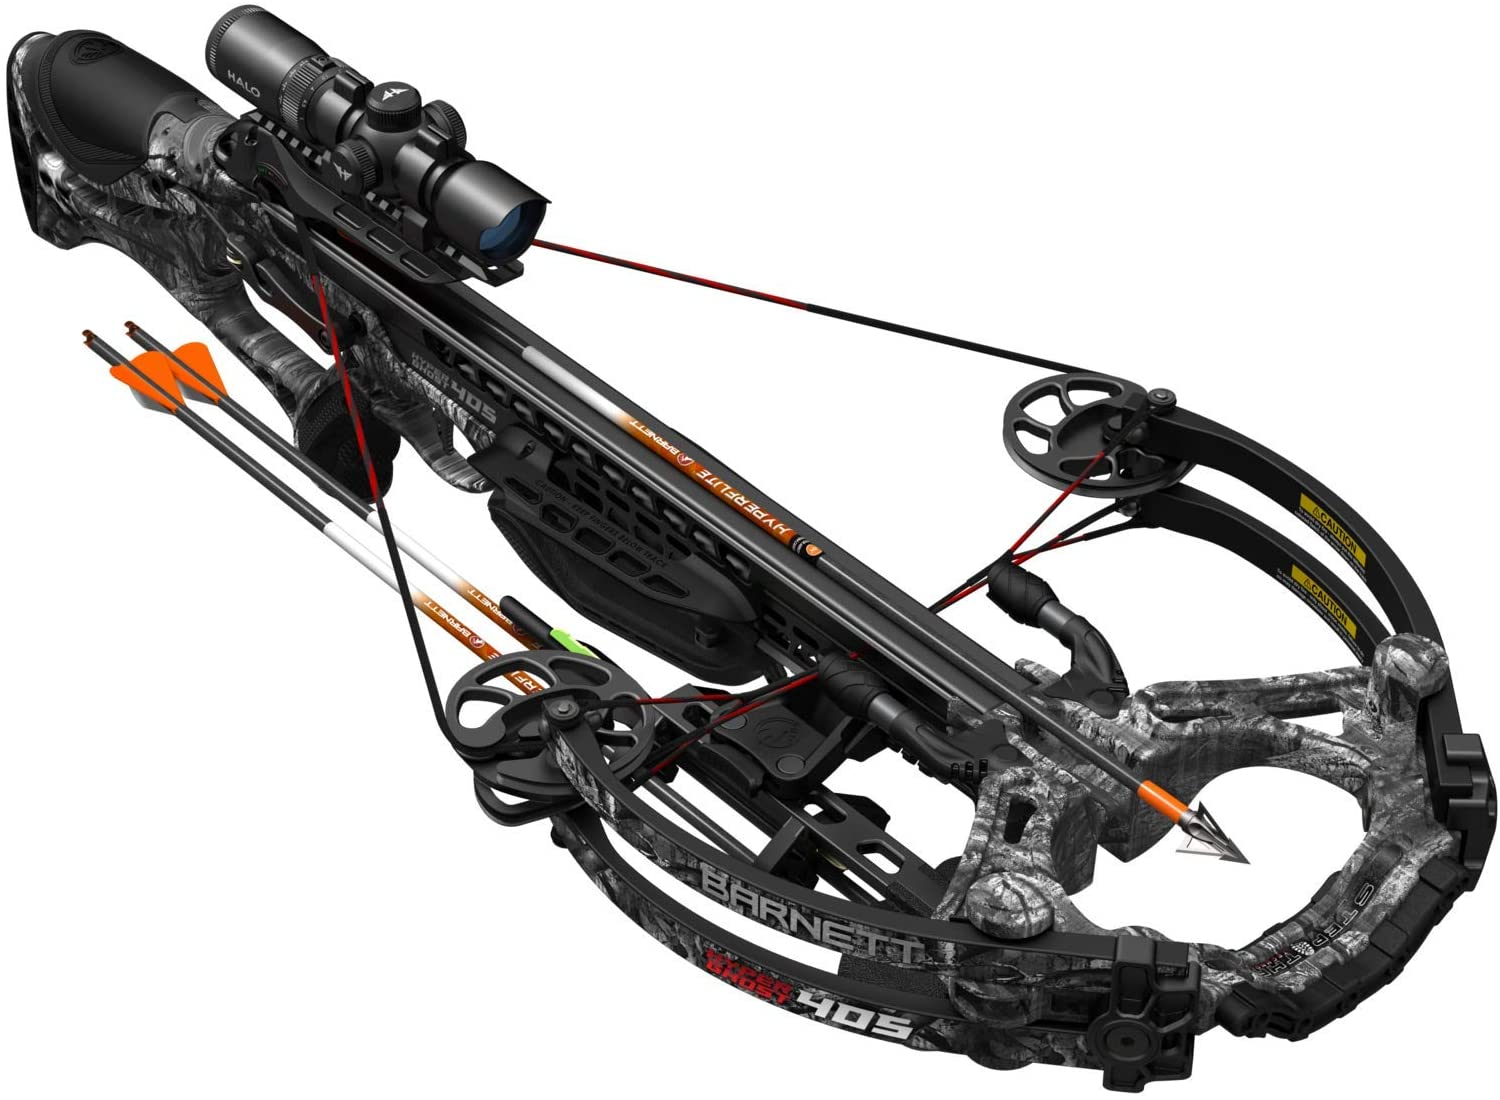 HyperGhost 405 crossbow review